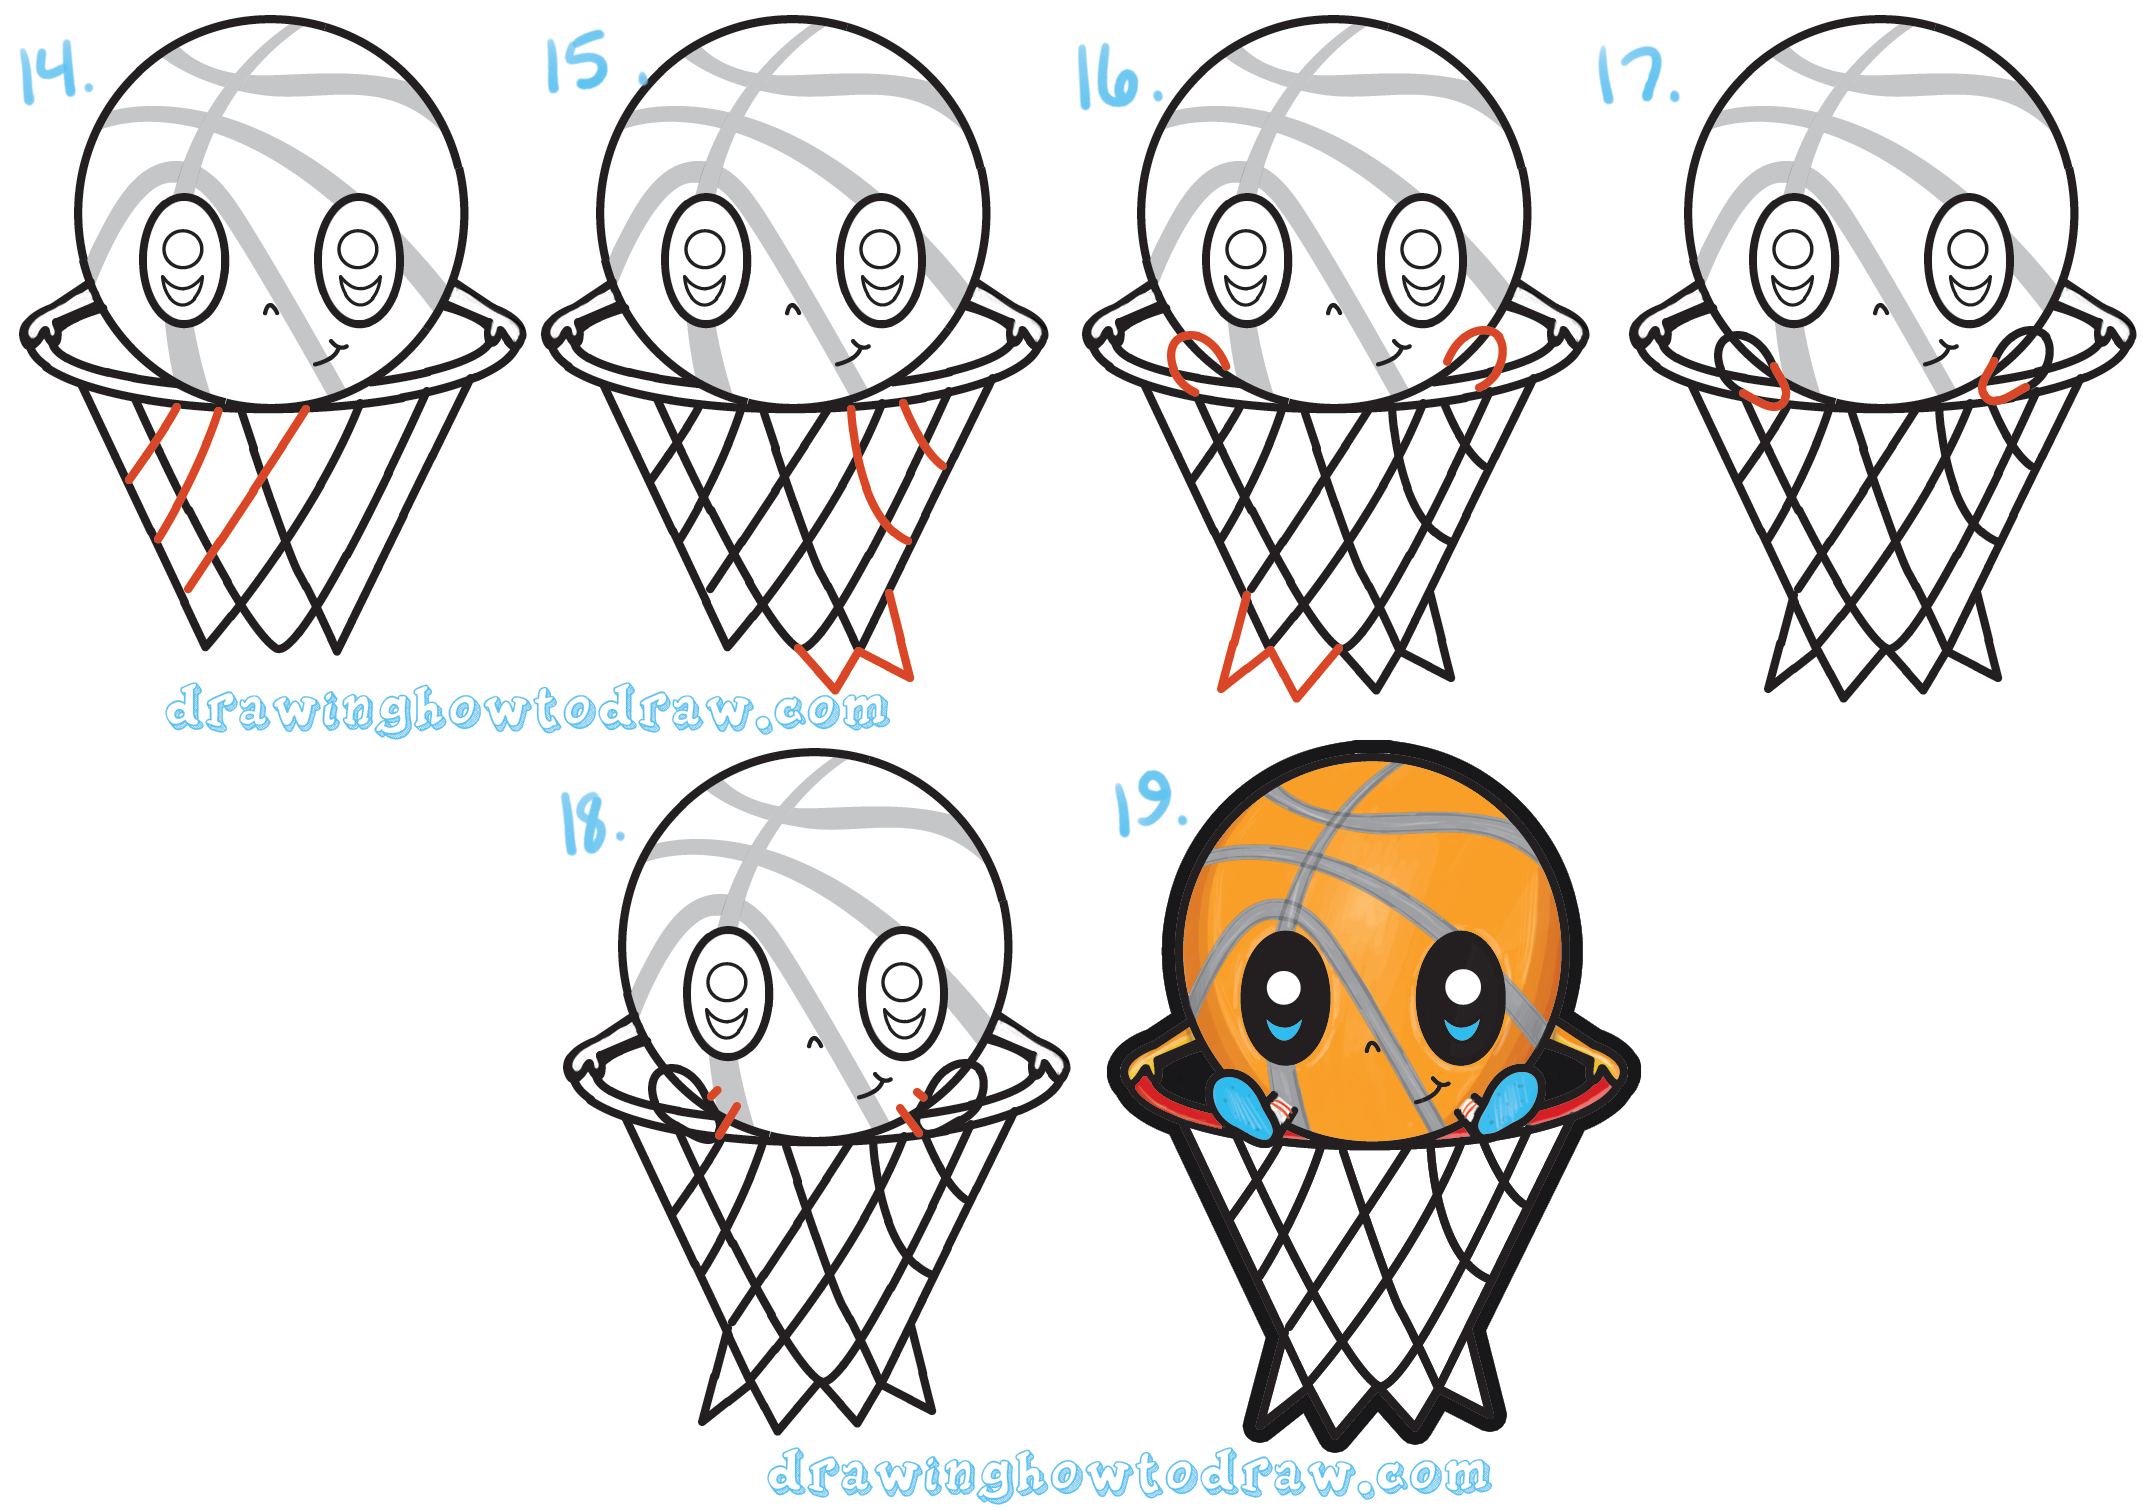 How To Draw A Cartoon Basketball Guy Cute Kawaii Chibi Style In